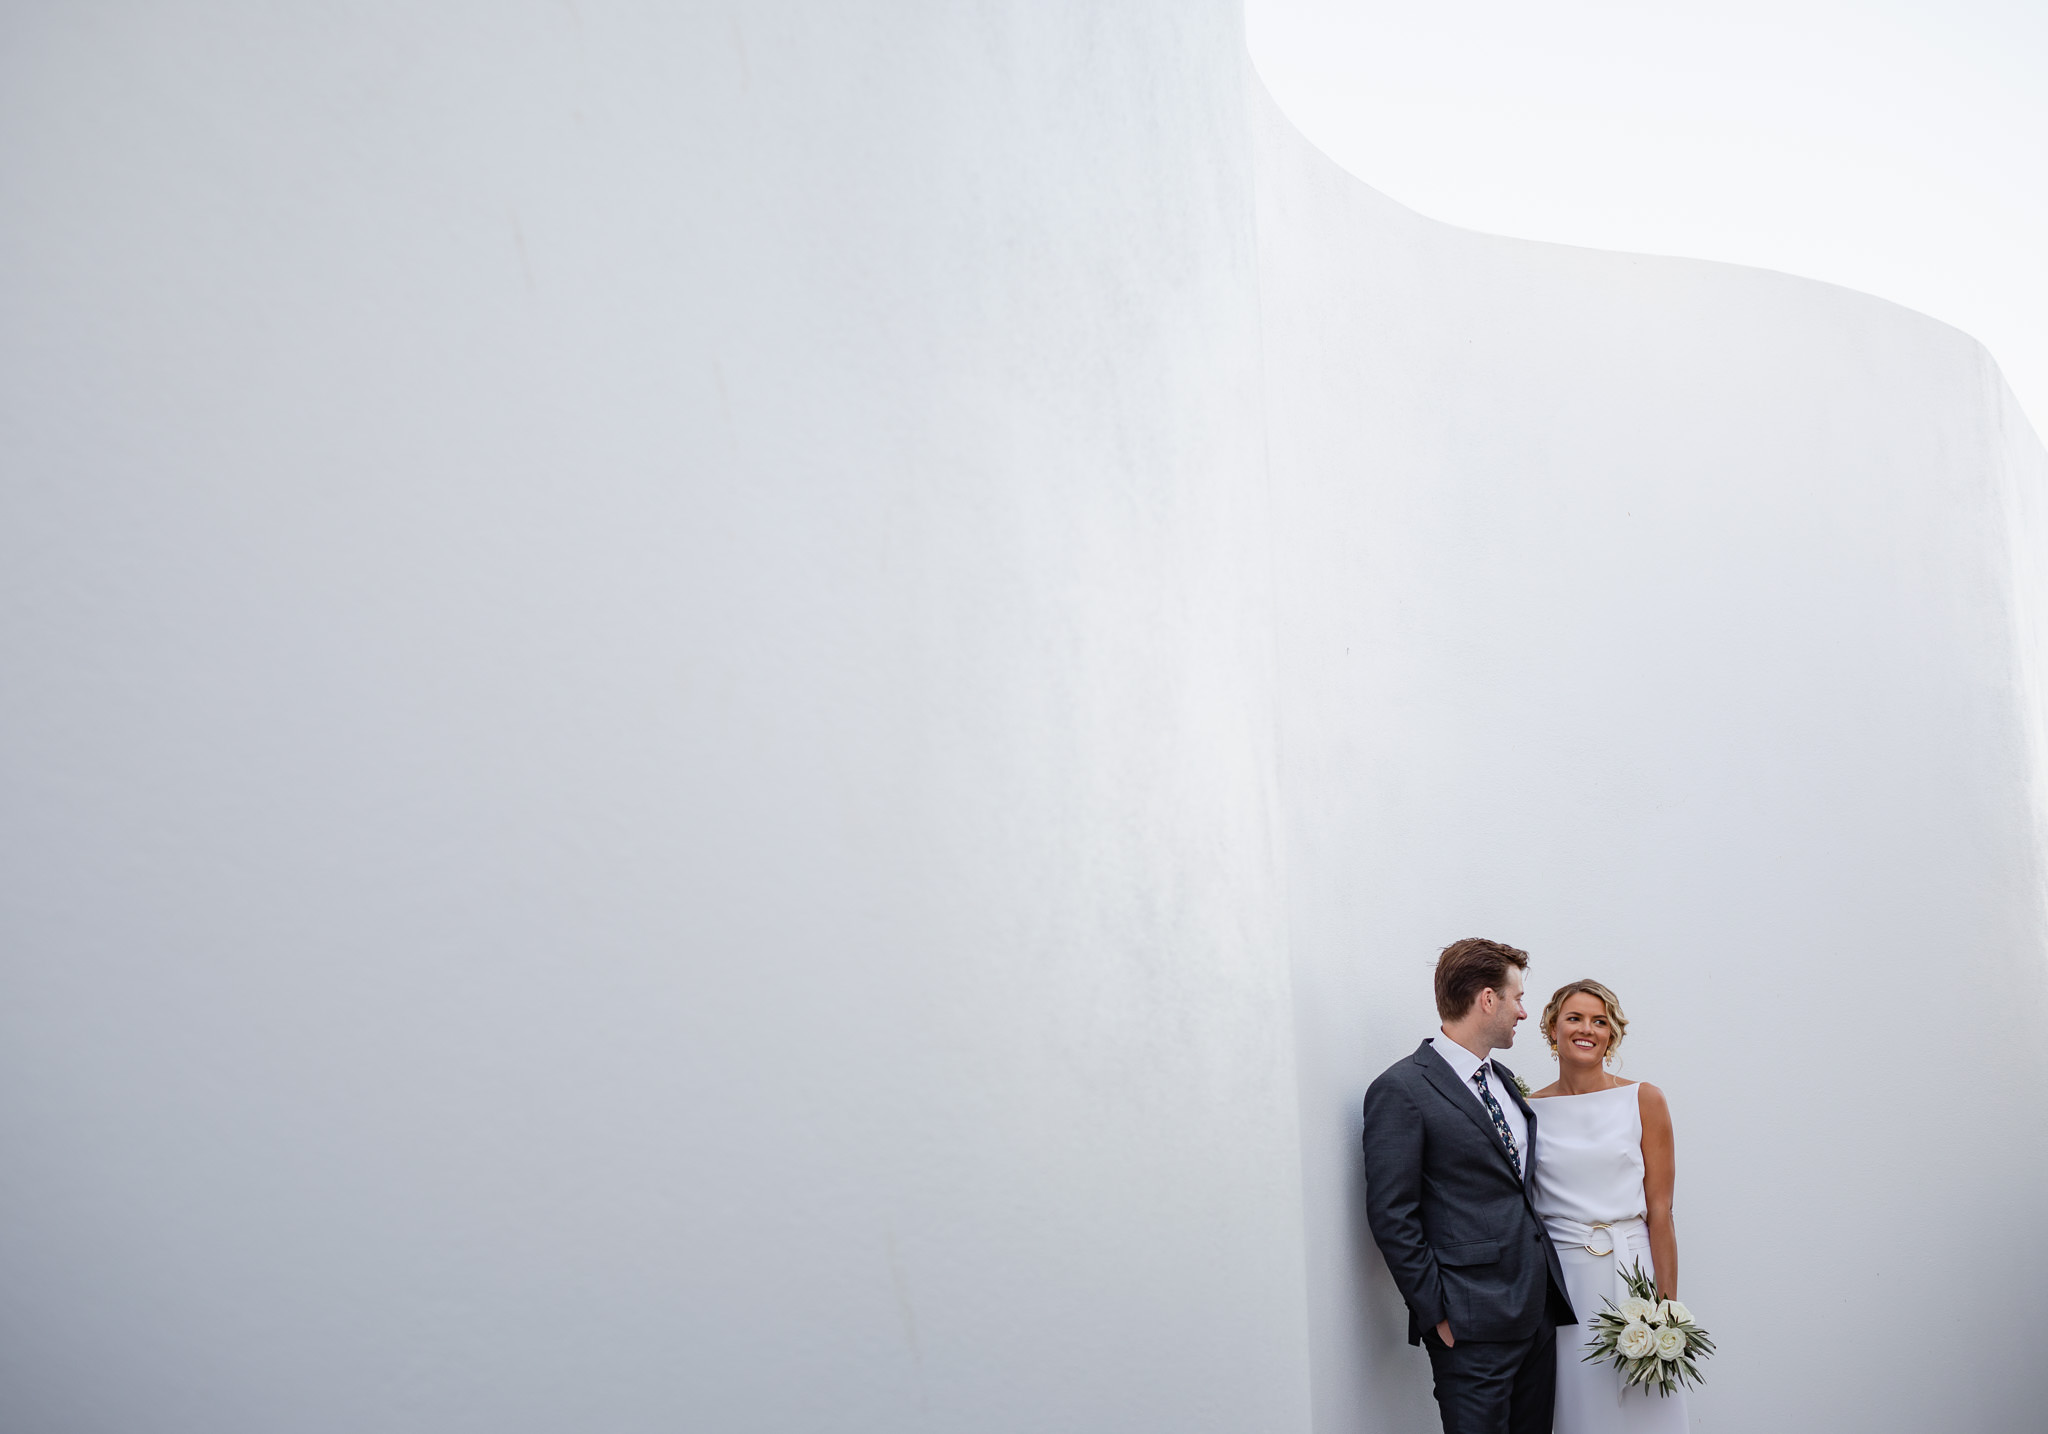 Modern bride and groom leaning against curved white wall on their wedding day